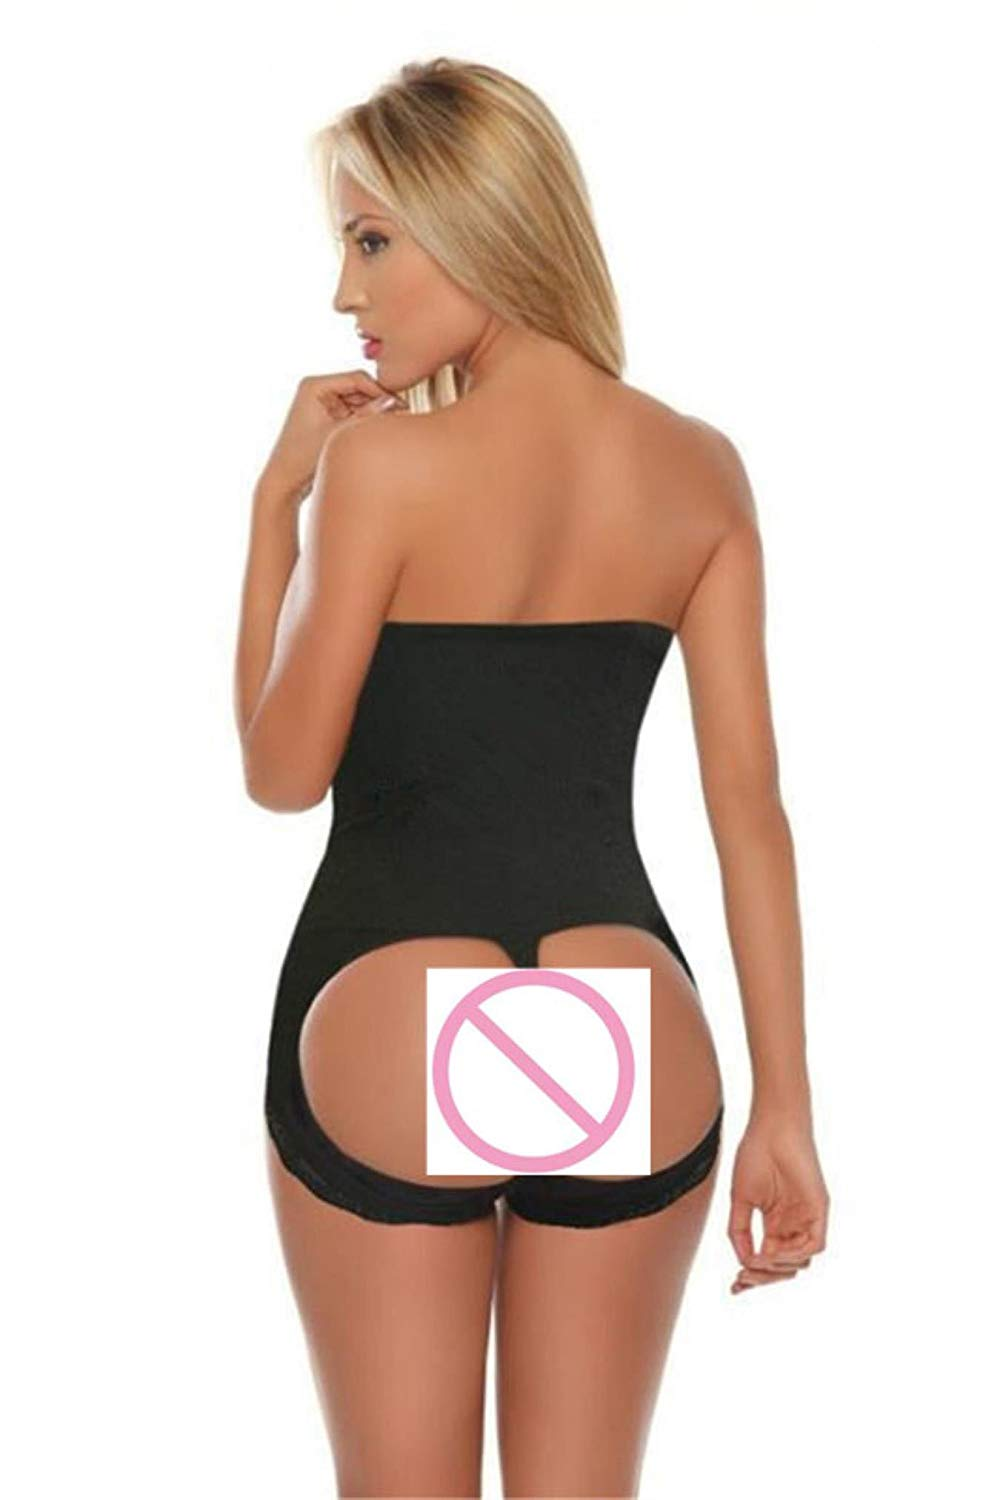 IceSummer Butt Lifter Panties Push up Hip Buttocks High Waist Slimming Underwear Female Body Shaper